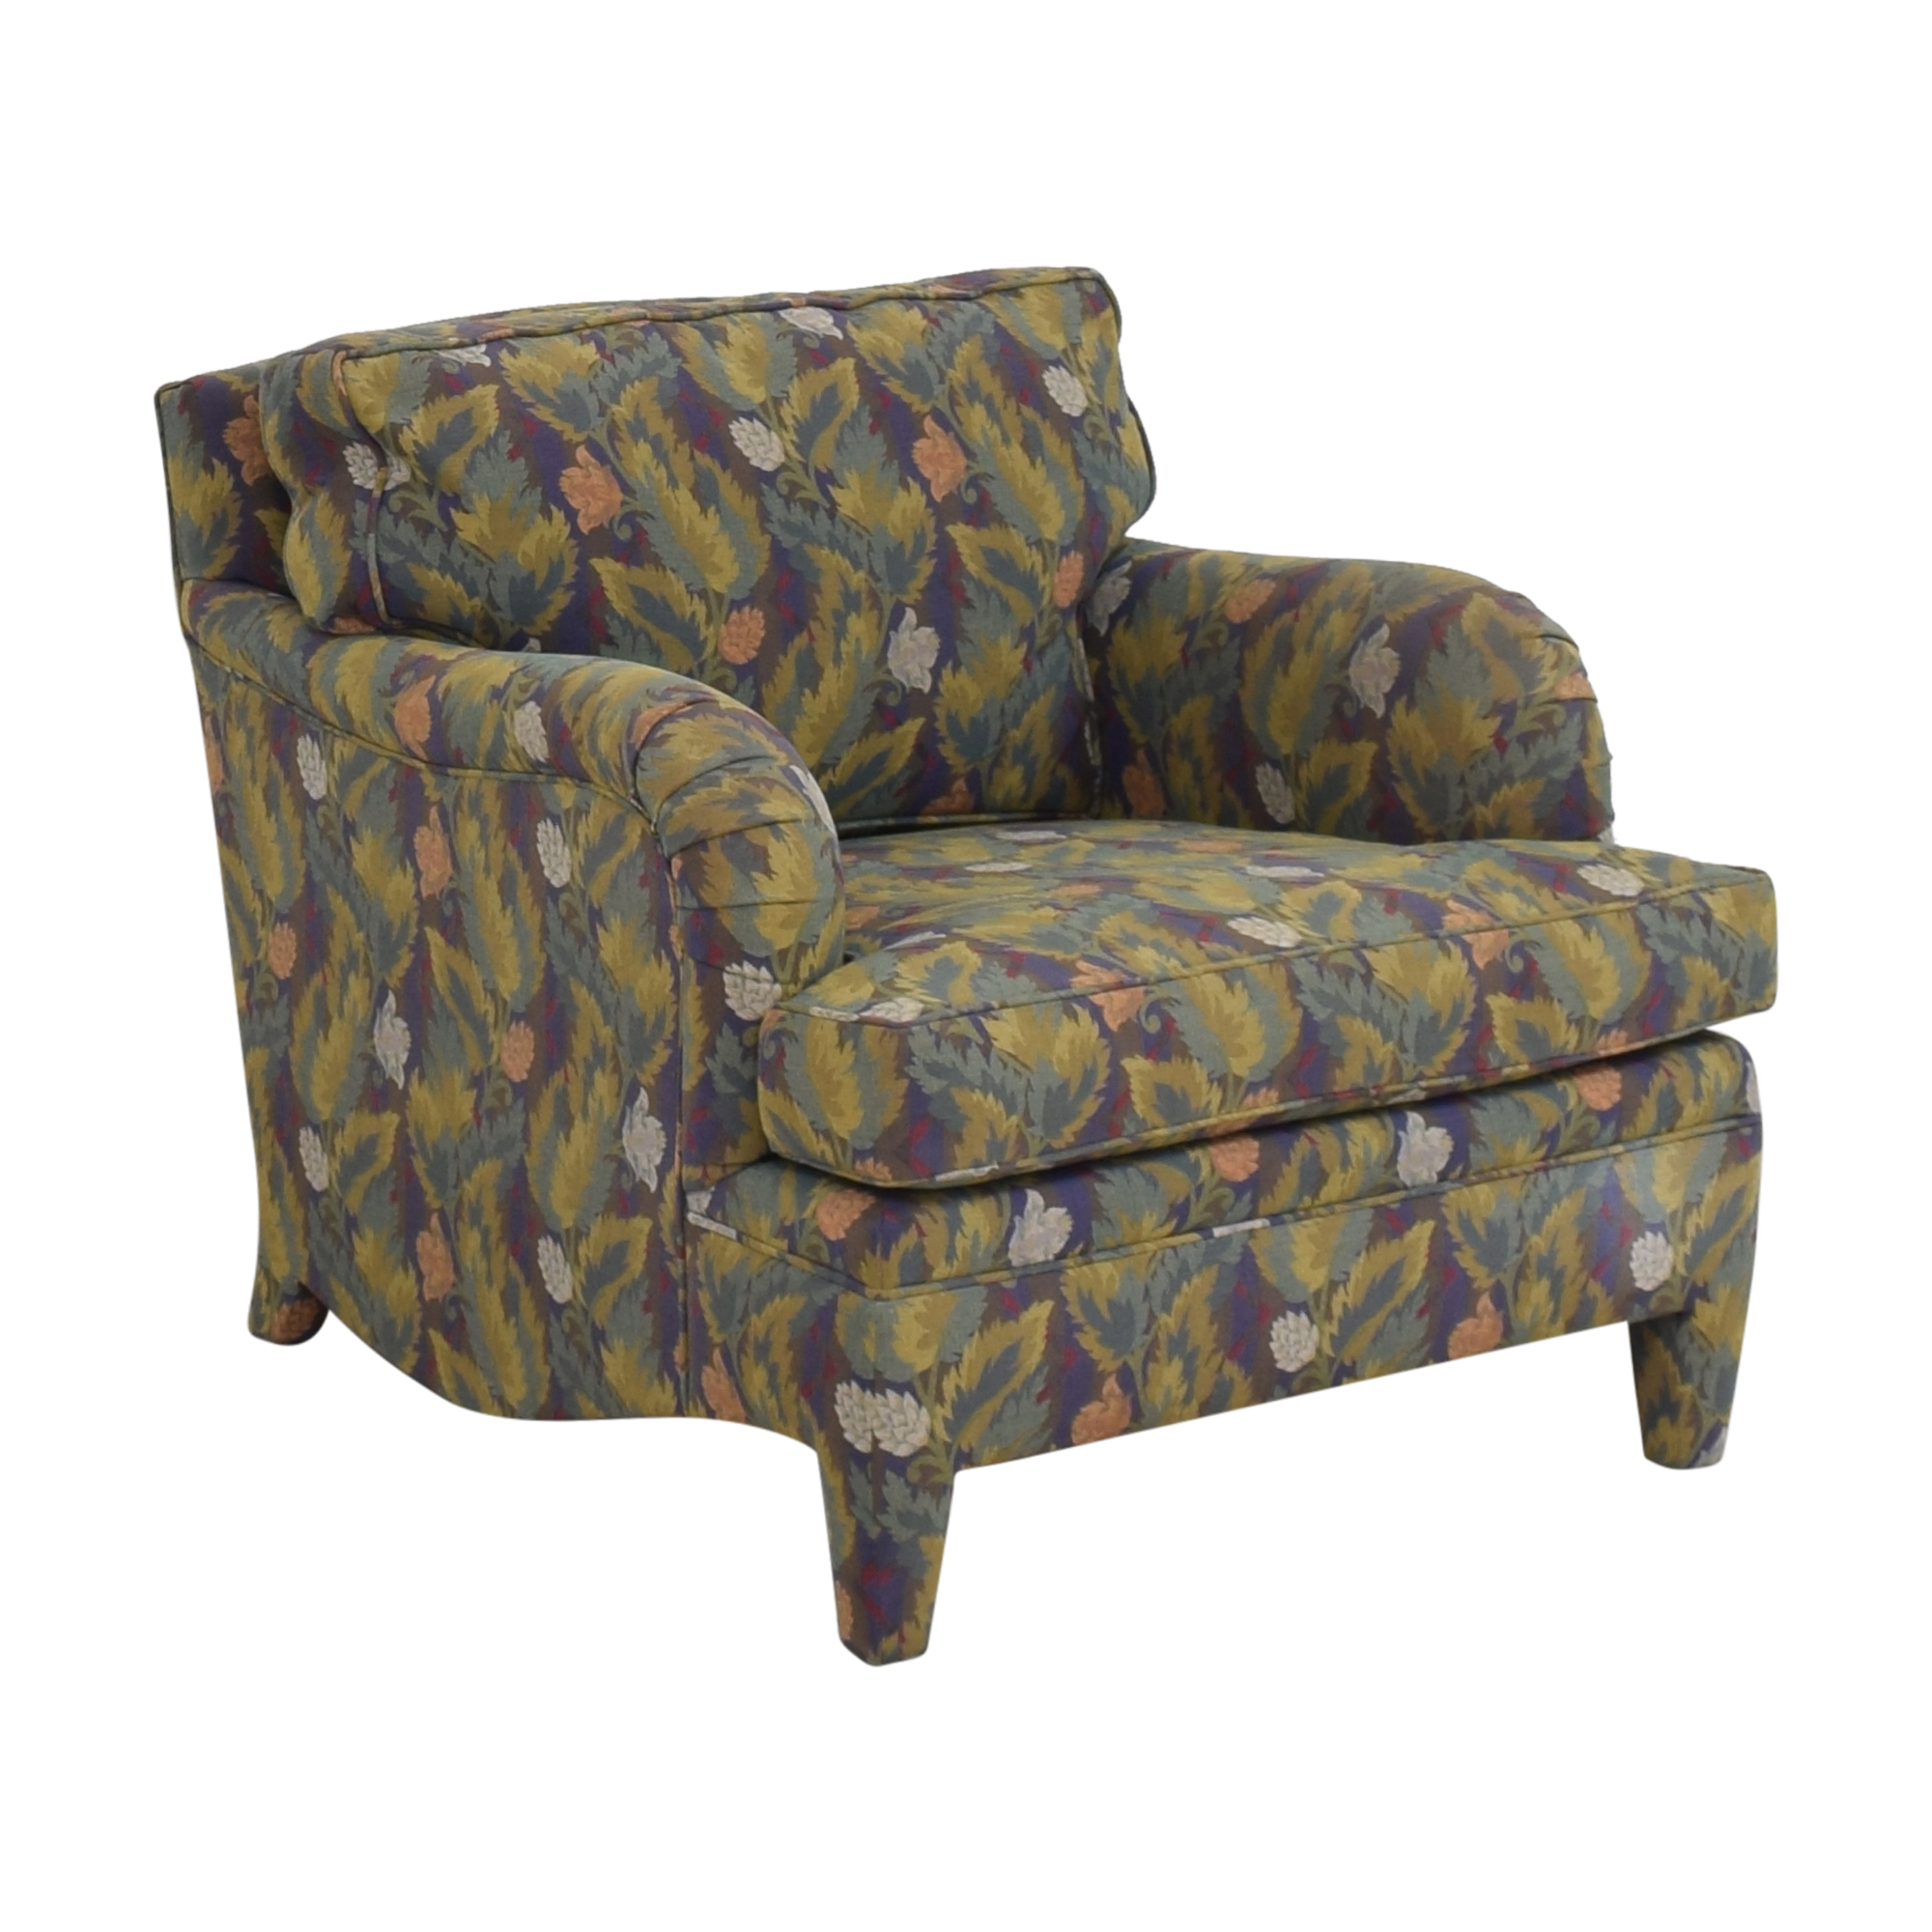 shop Donghia Donghia Upholstered Club Chair online